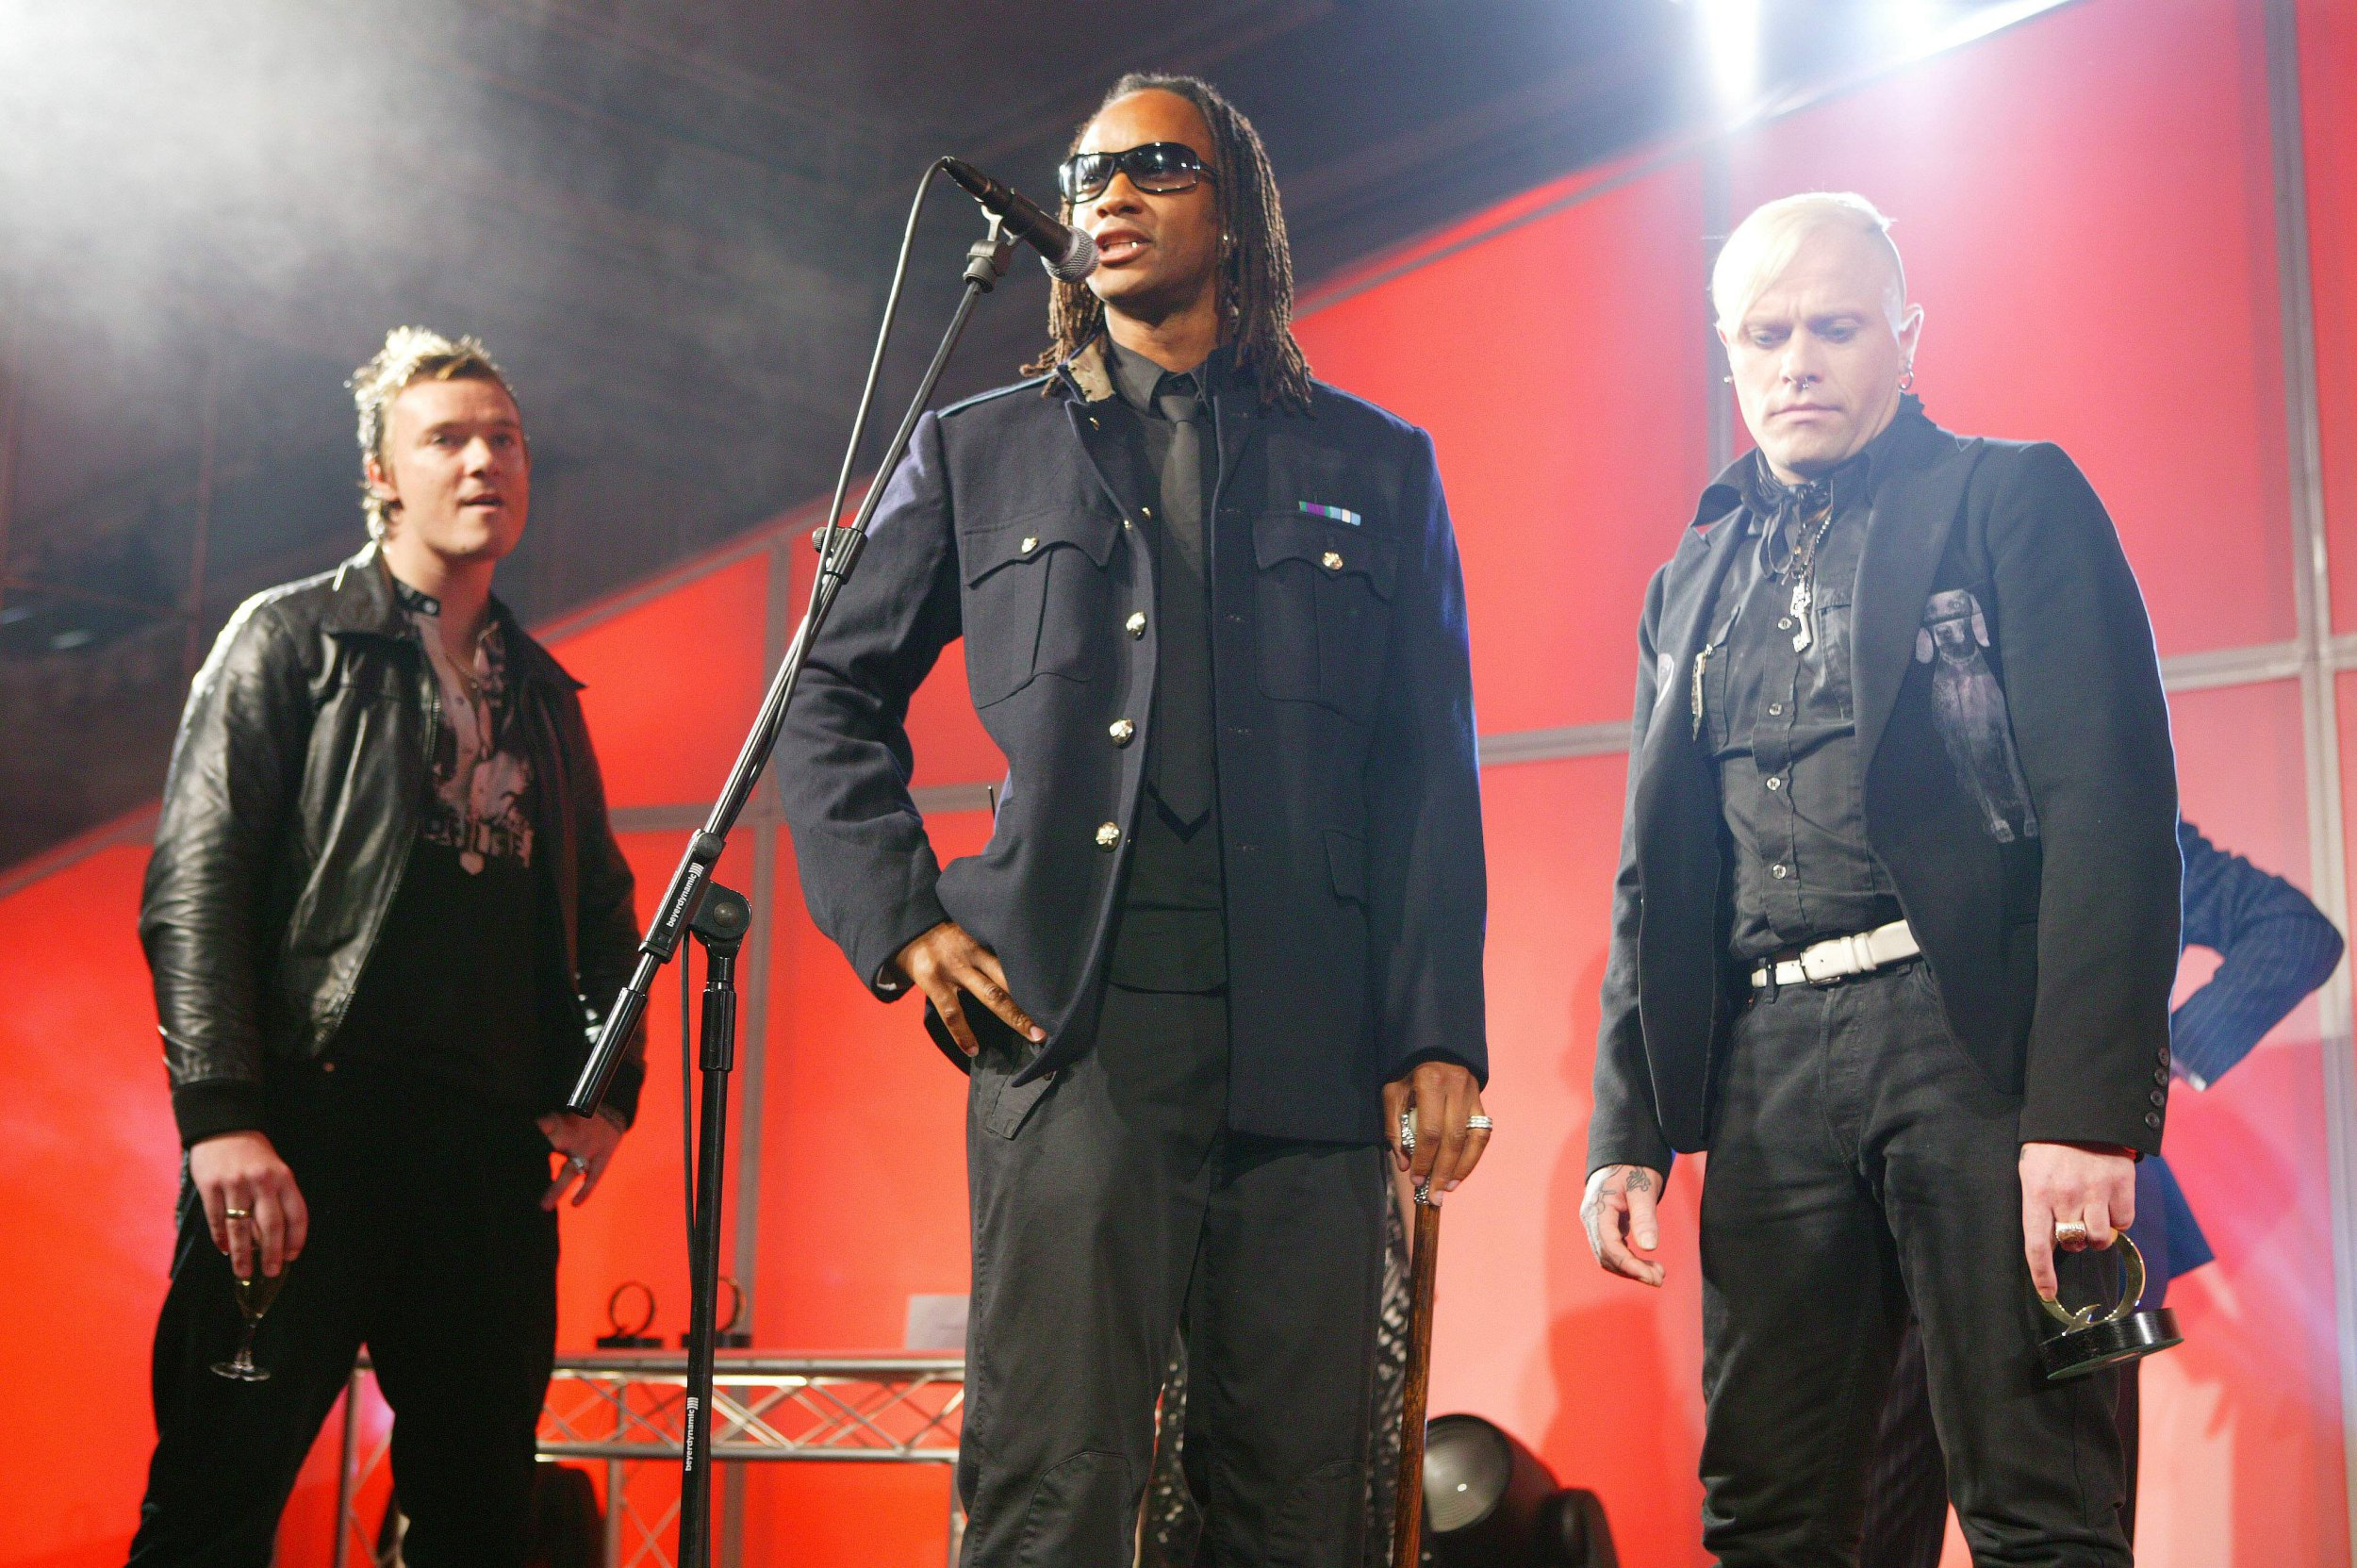 UNITED KINGDOM - OCTOBER 10: Q AWARDS Photo of PRODIGY, Liam Howlett, Maxim & Keith Flint (Photo by Mick Hutson/Redferns)